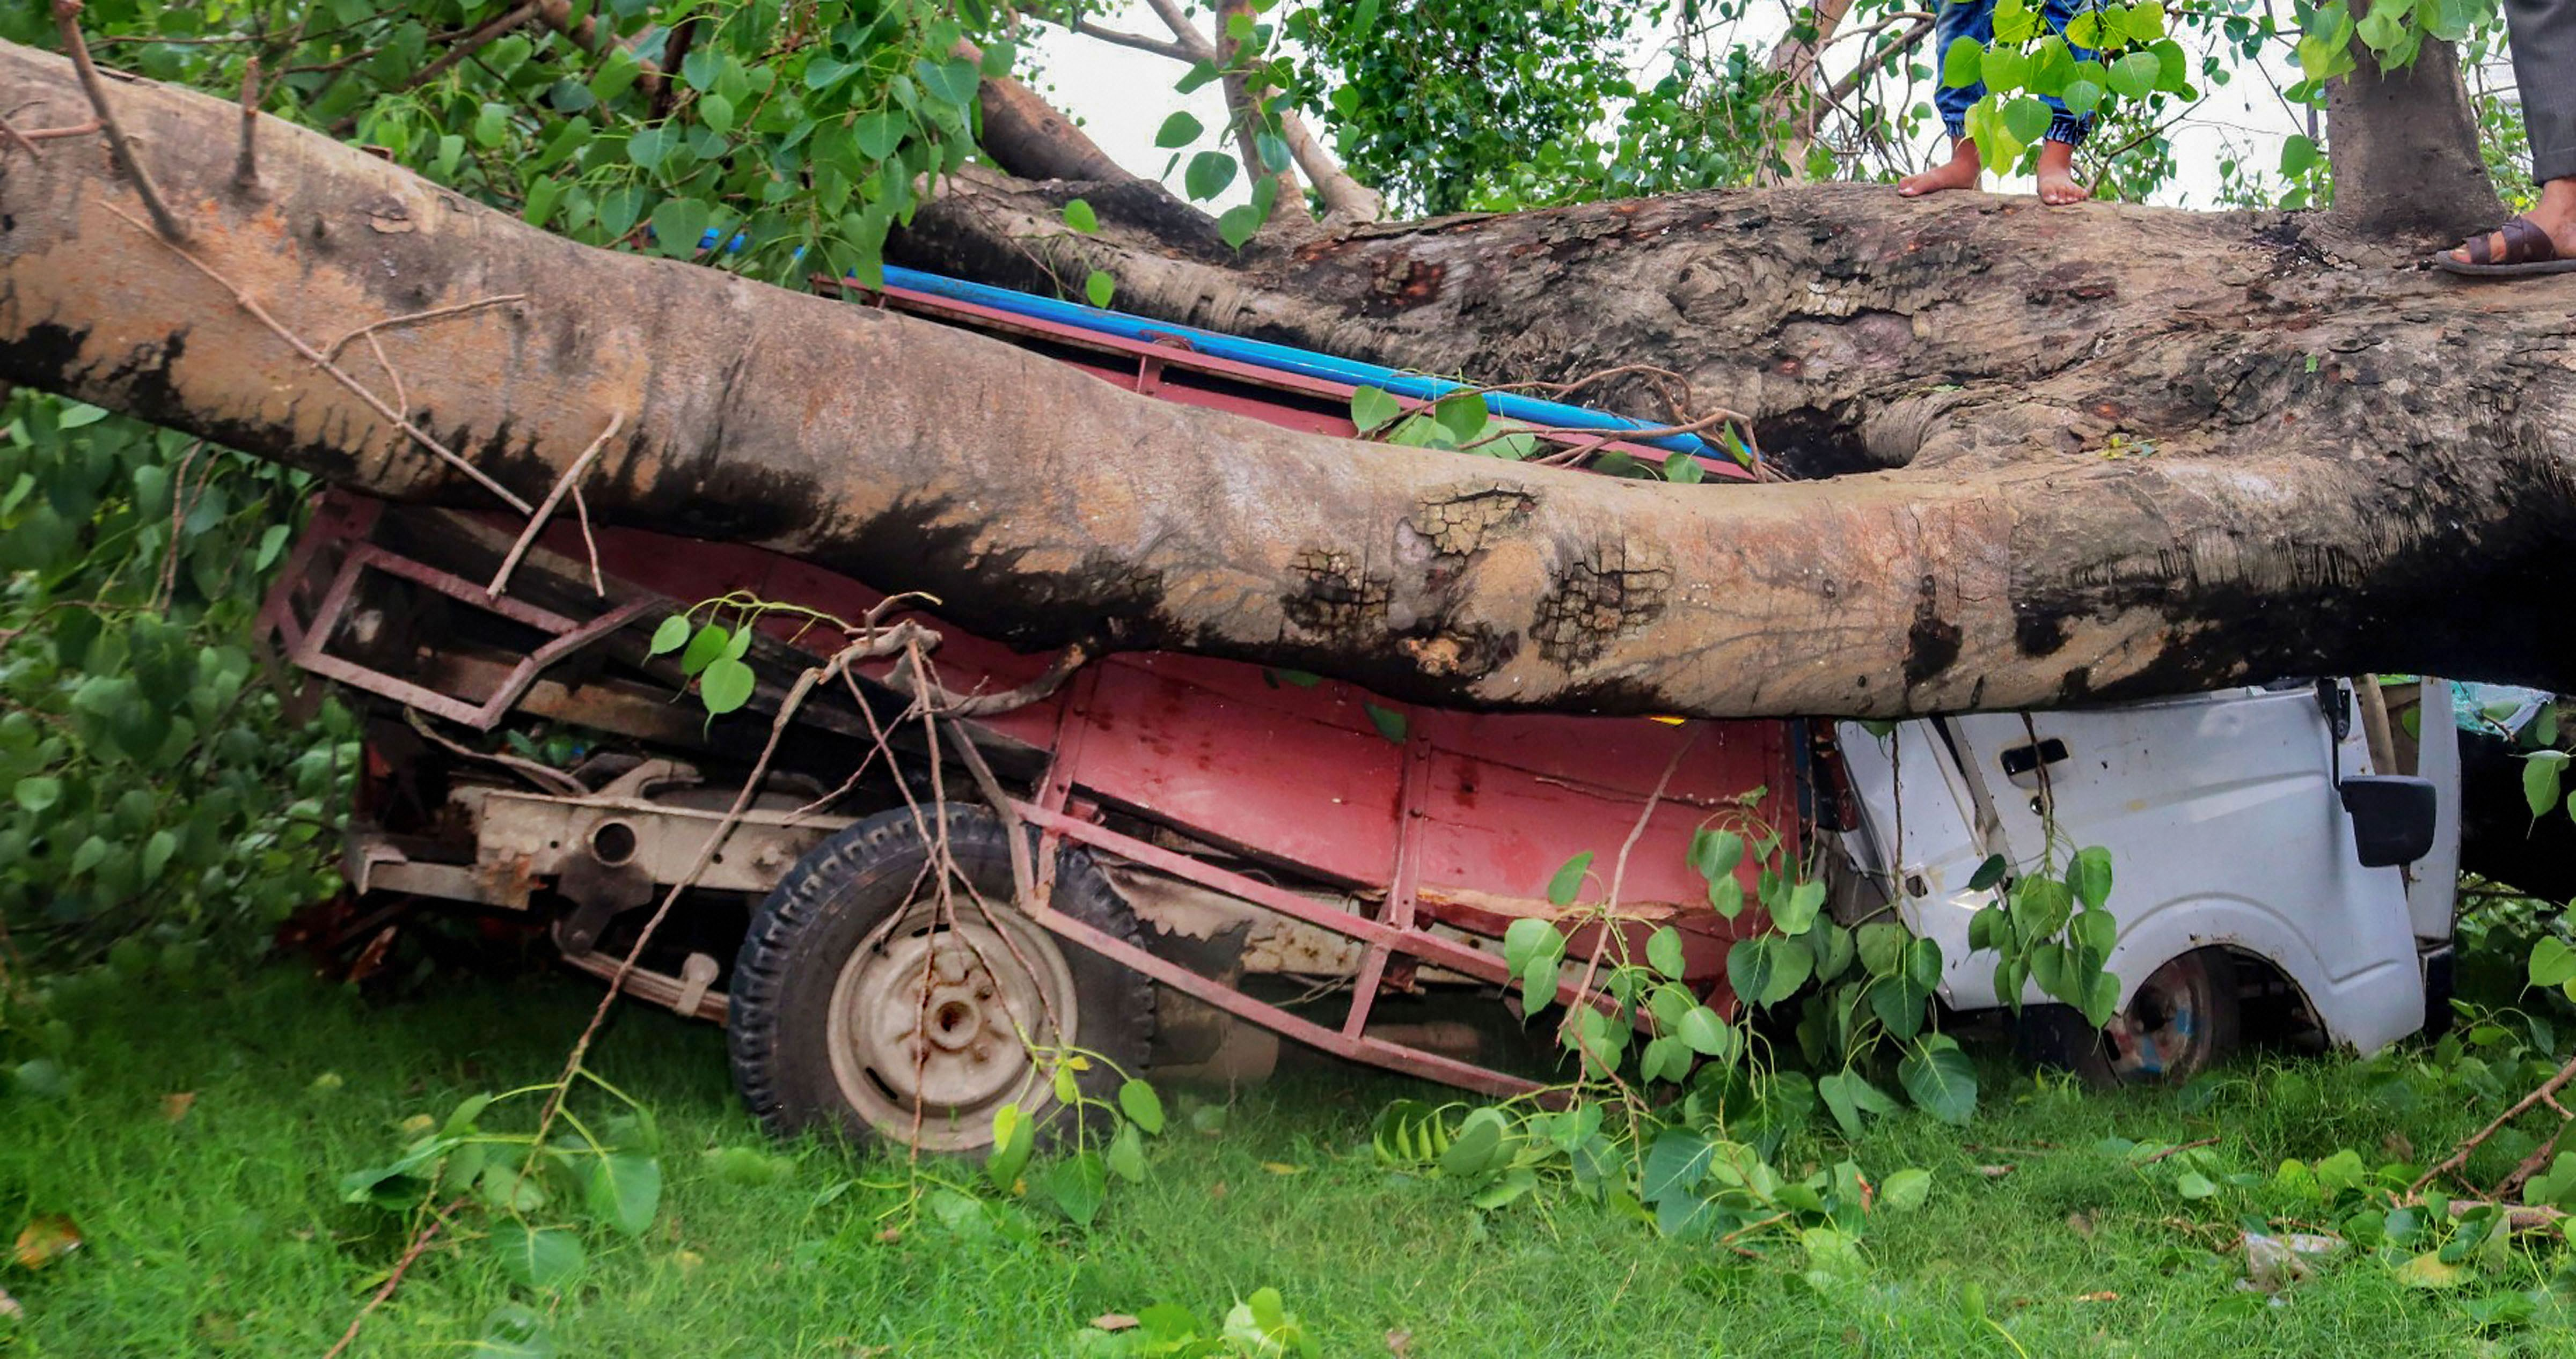 Mangled remains of a vehicle after a tree fell on it in the aftermath of Cyclone Amphan, in Burdwan district on Thursday, May 21, 2020.